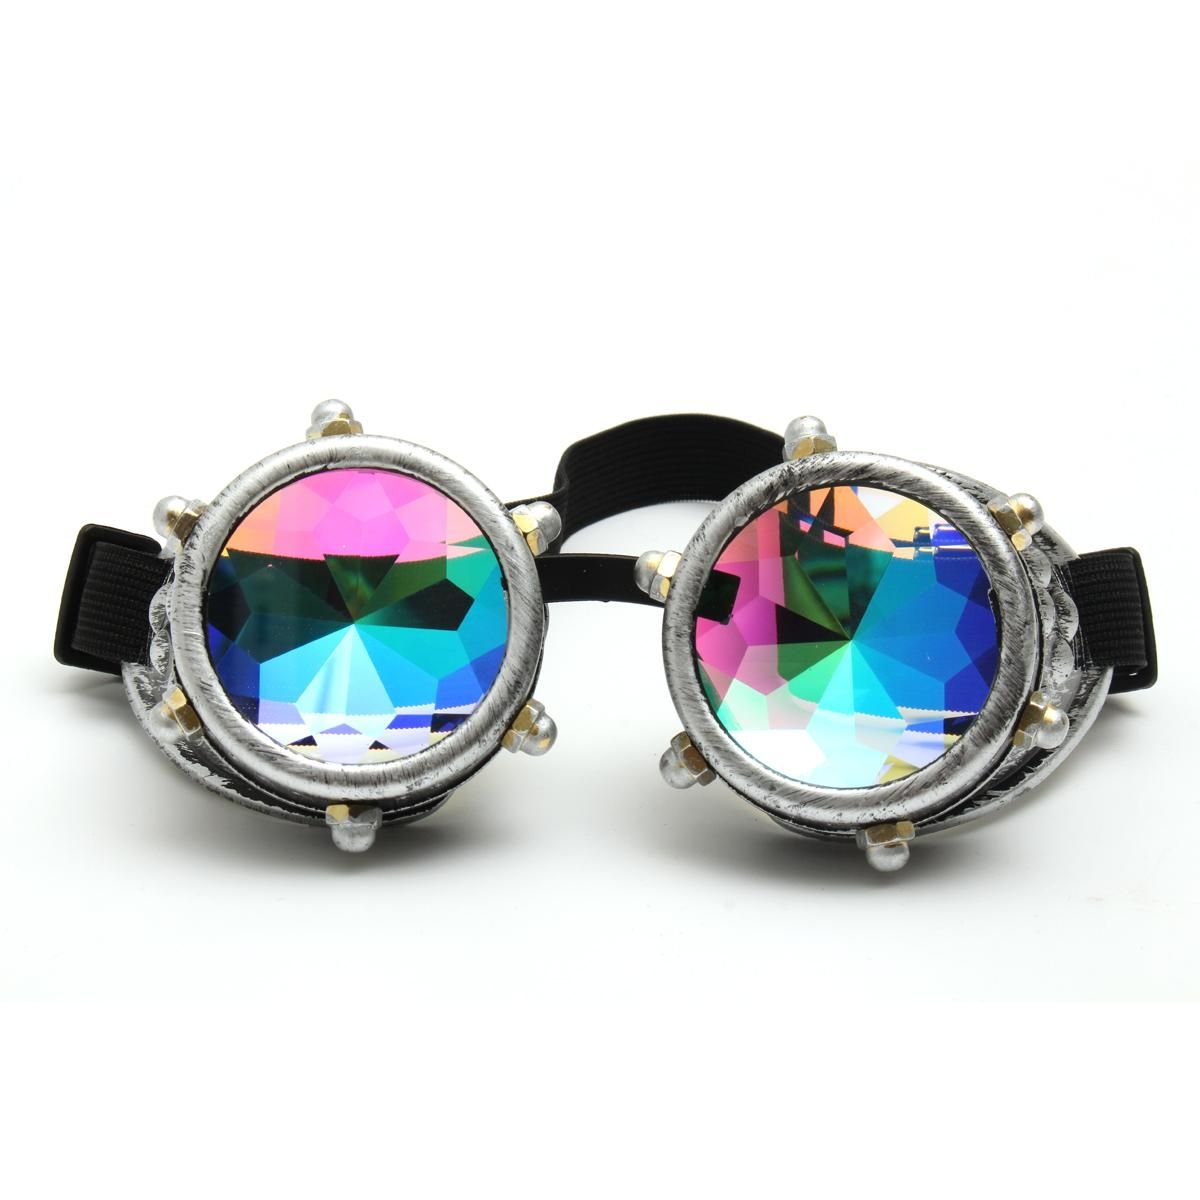 503dfb570a6 Buy Generic Festivals Kaleidoscope Glasses Vintage Rainbow Crystal  Windproof Sunglasses Gift - Silver in Egypt